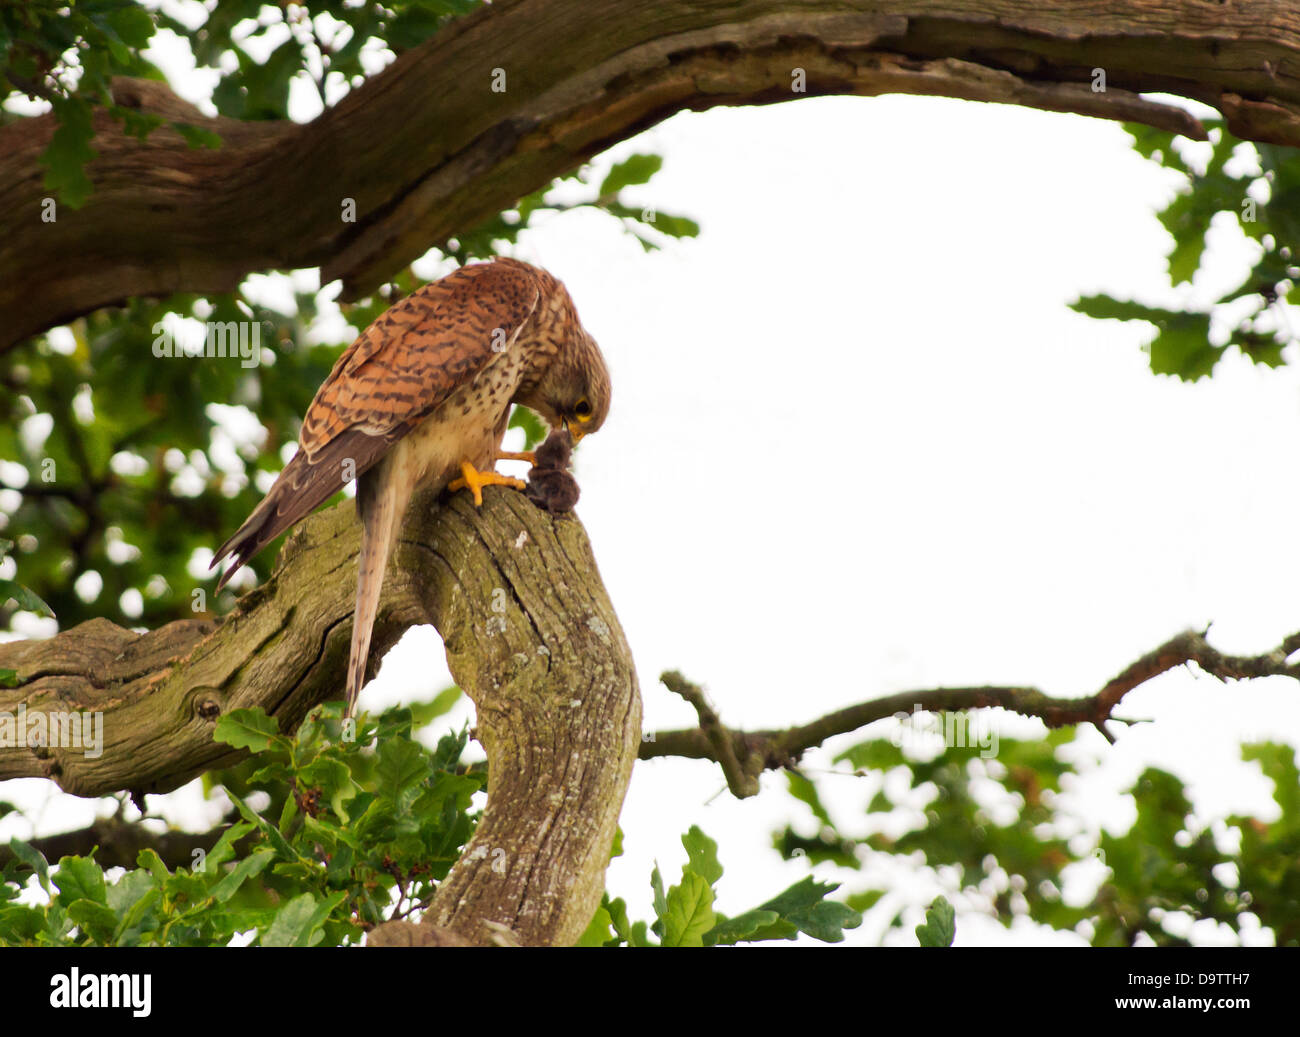 Wild Female Kestrel, Falco tinnunculus perched on branch of oak tree with vole - Stock Image